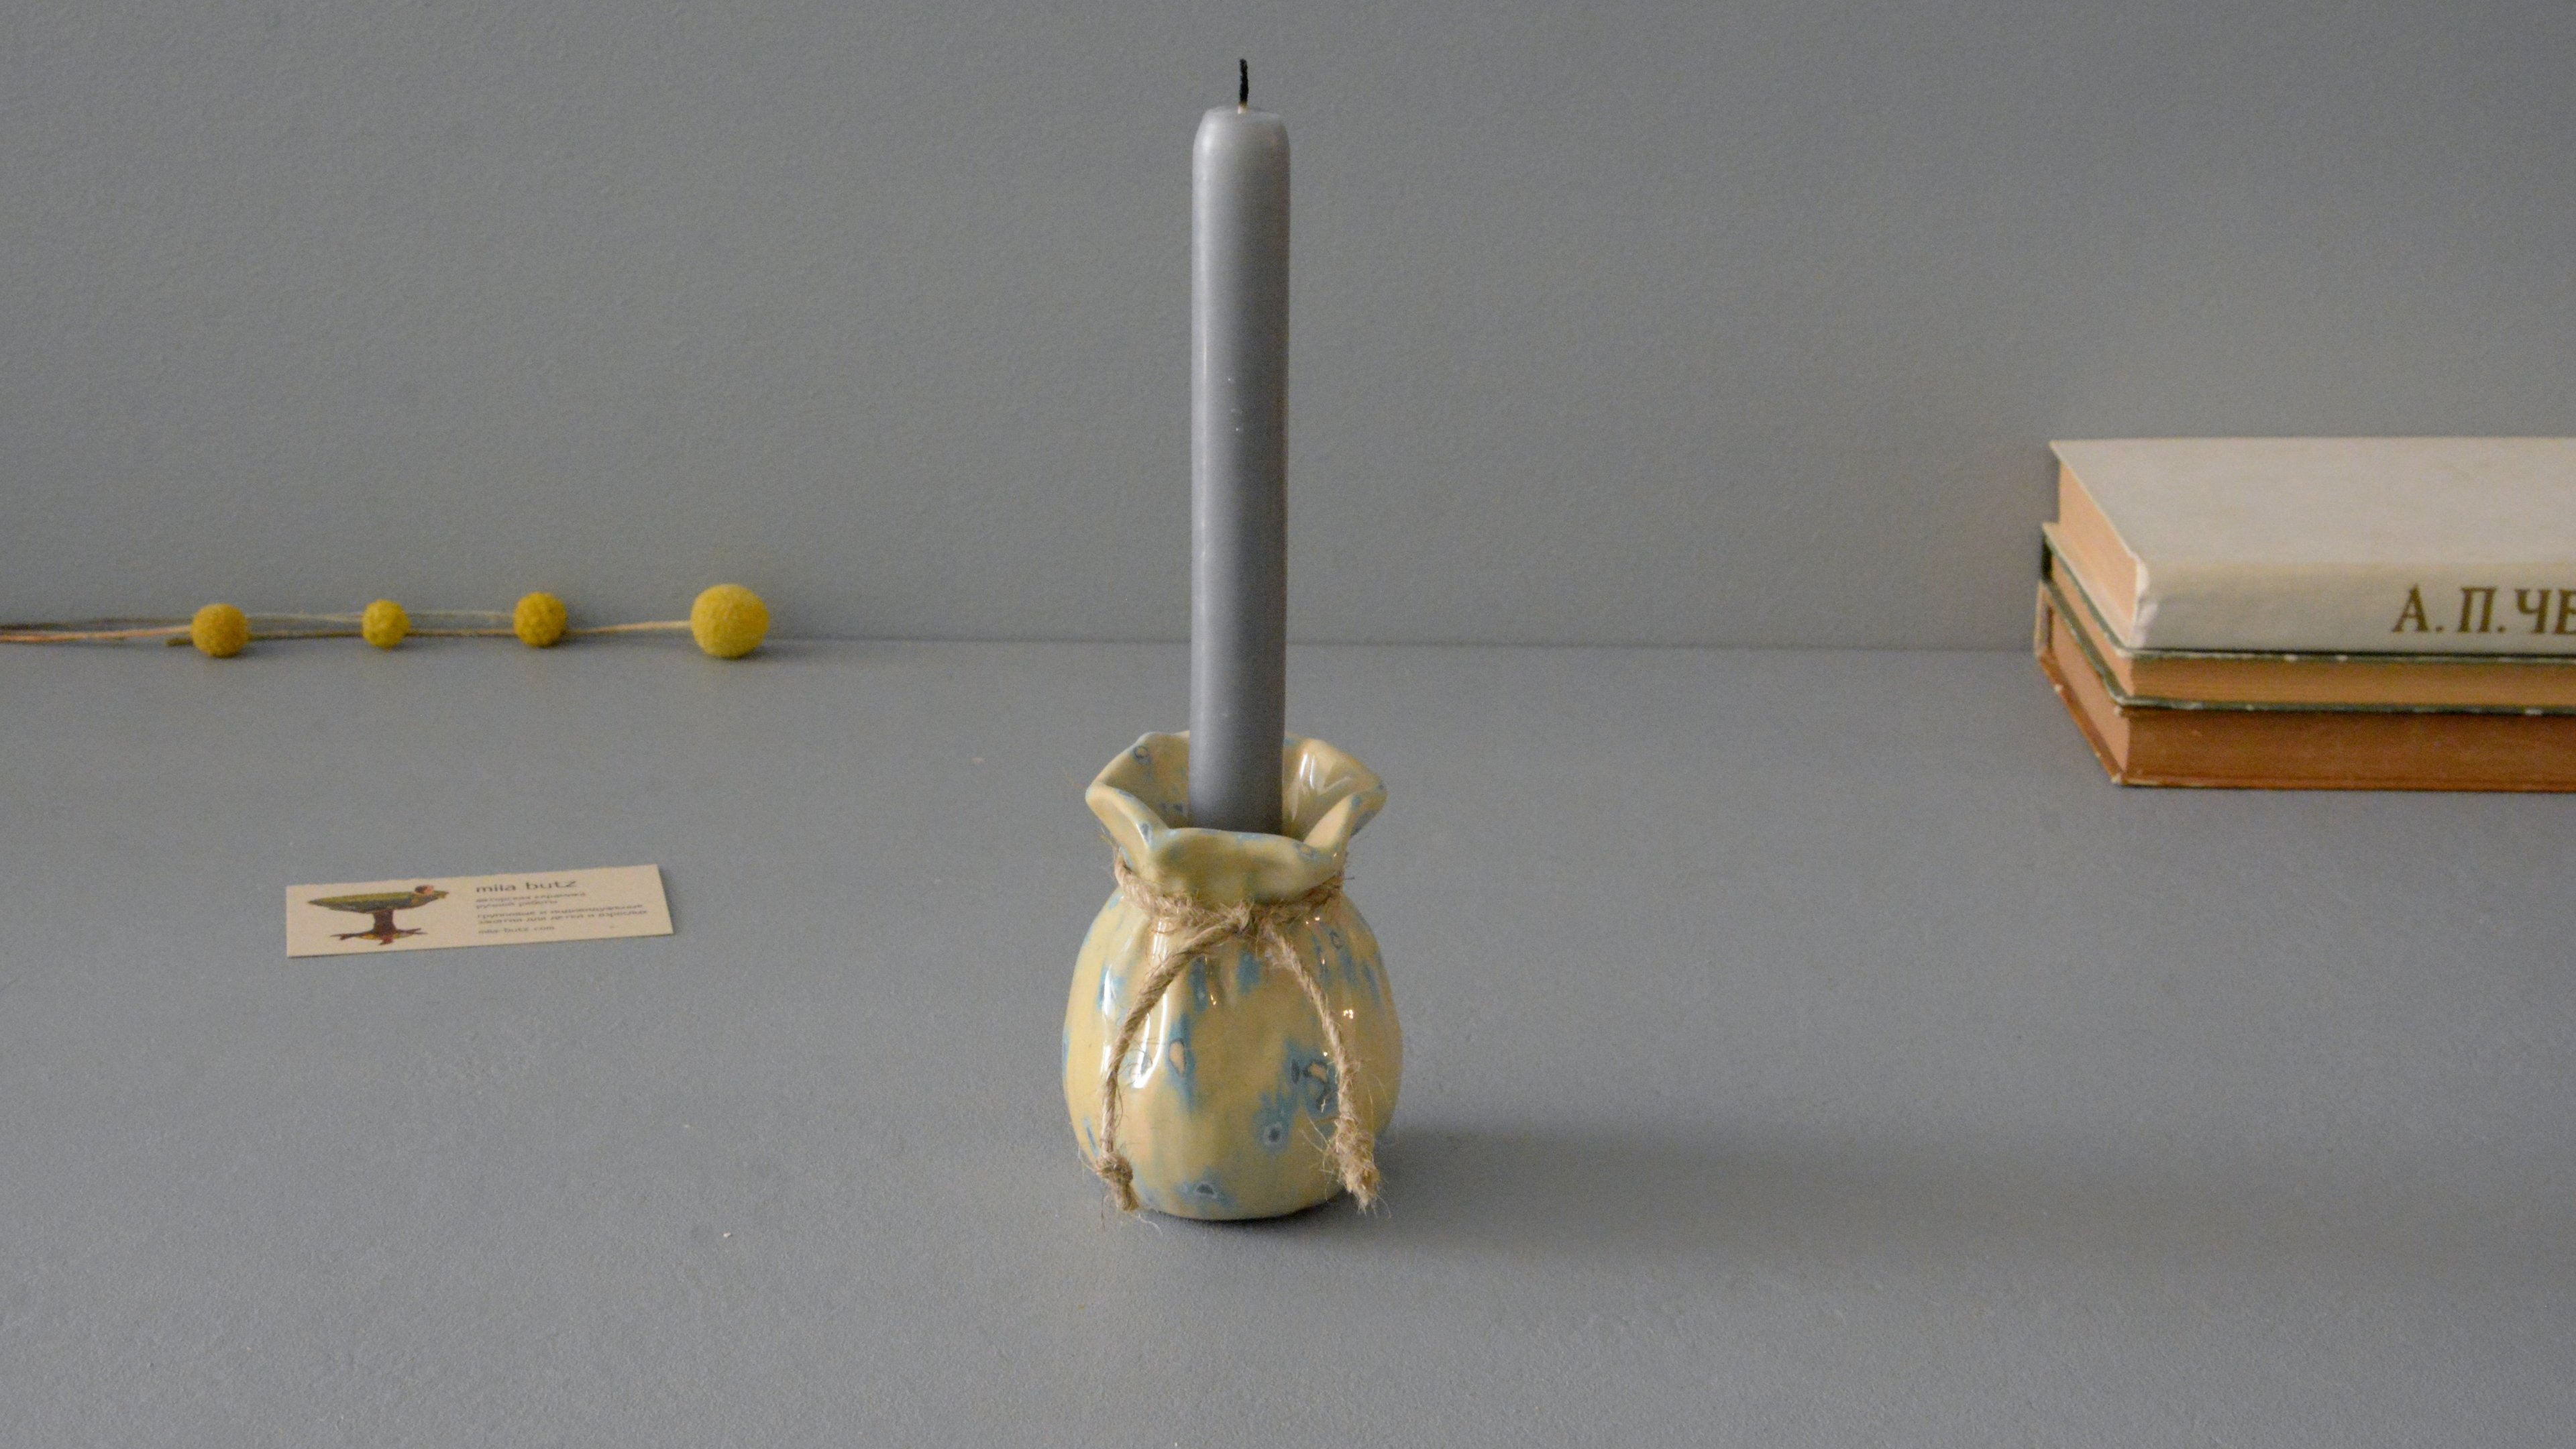 Candle vase «Beige Bagful», height - 9 cm, color - beige. Photo 1277-3840-2160.